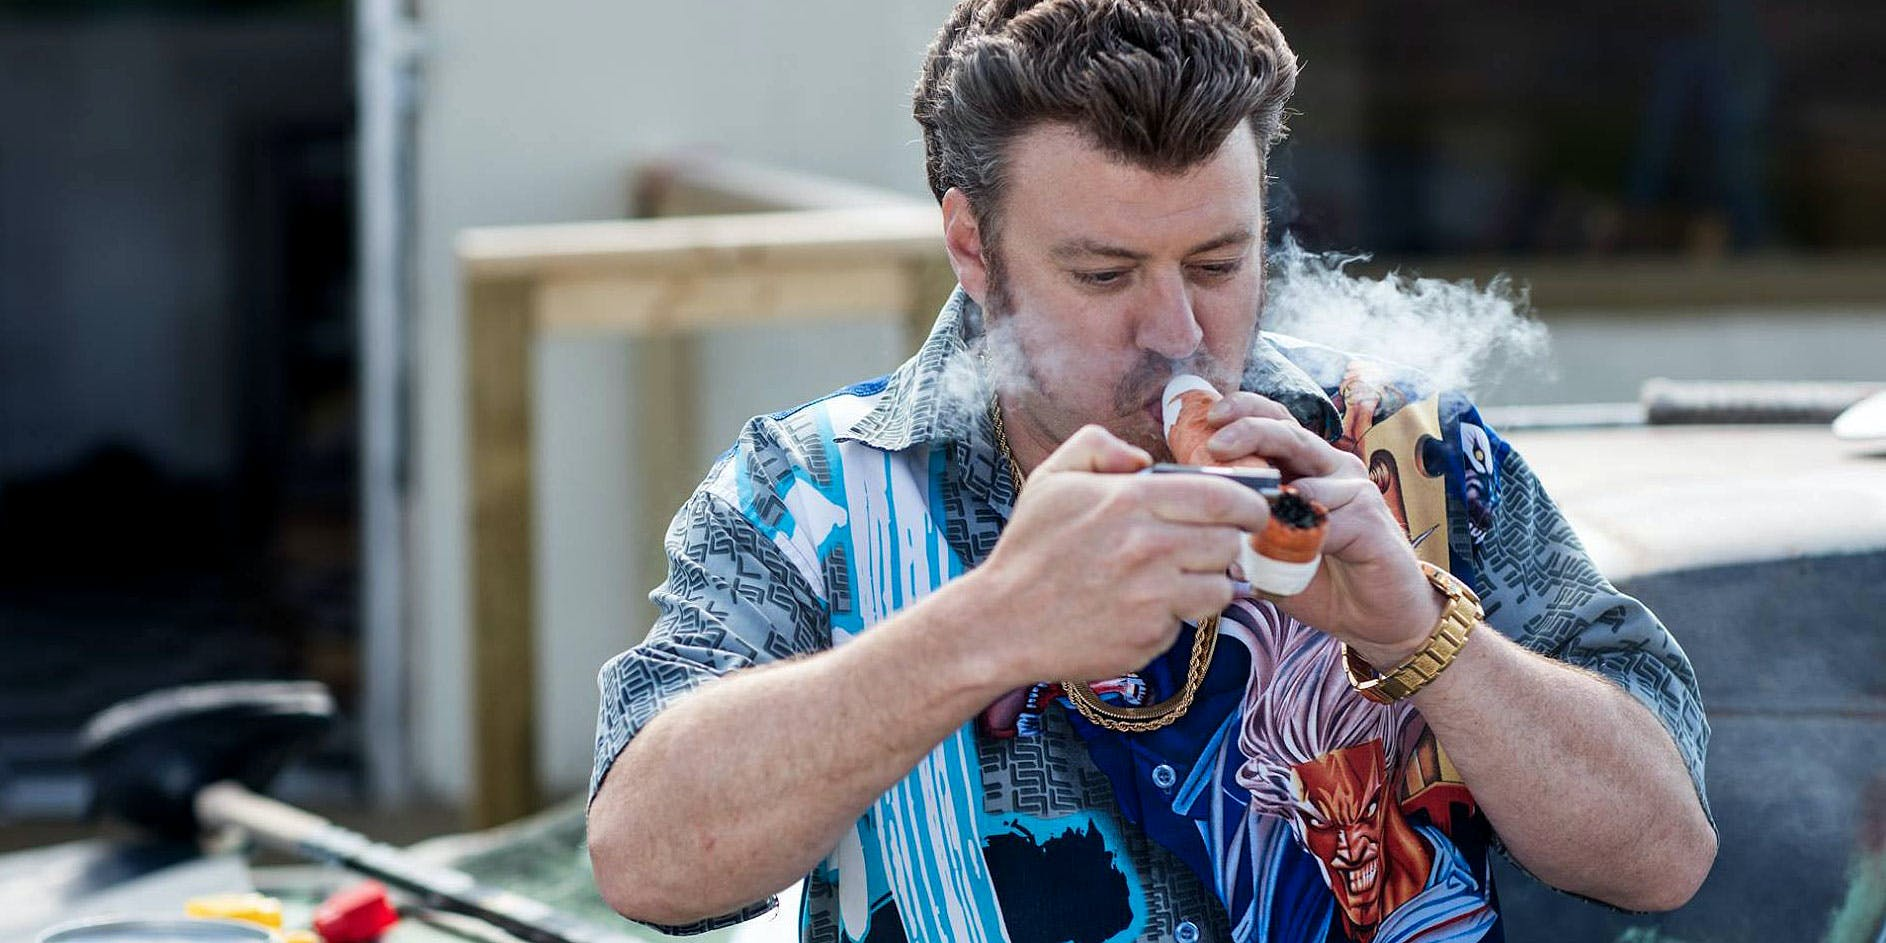 Ricky from Trailer Park Boys hits a bowl